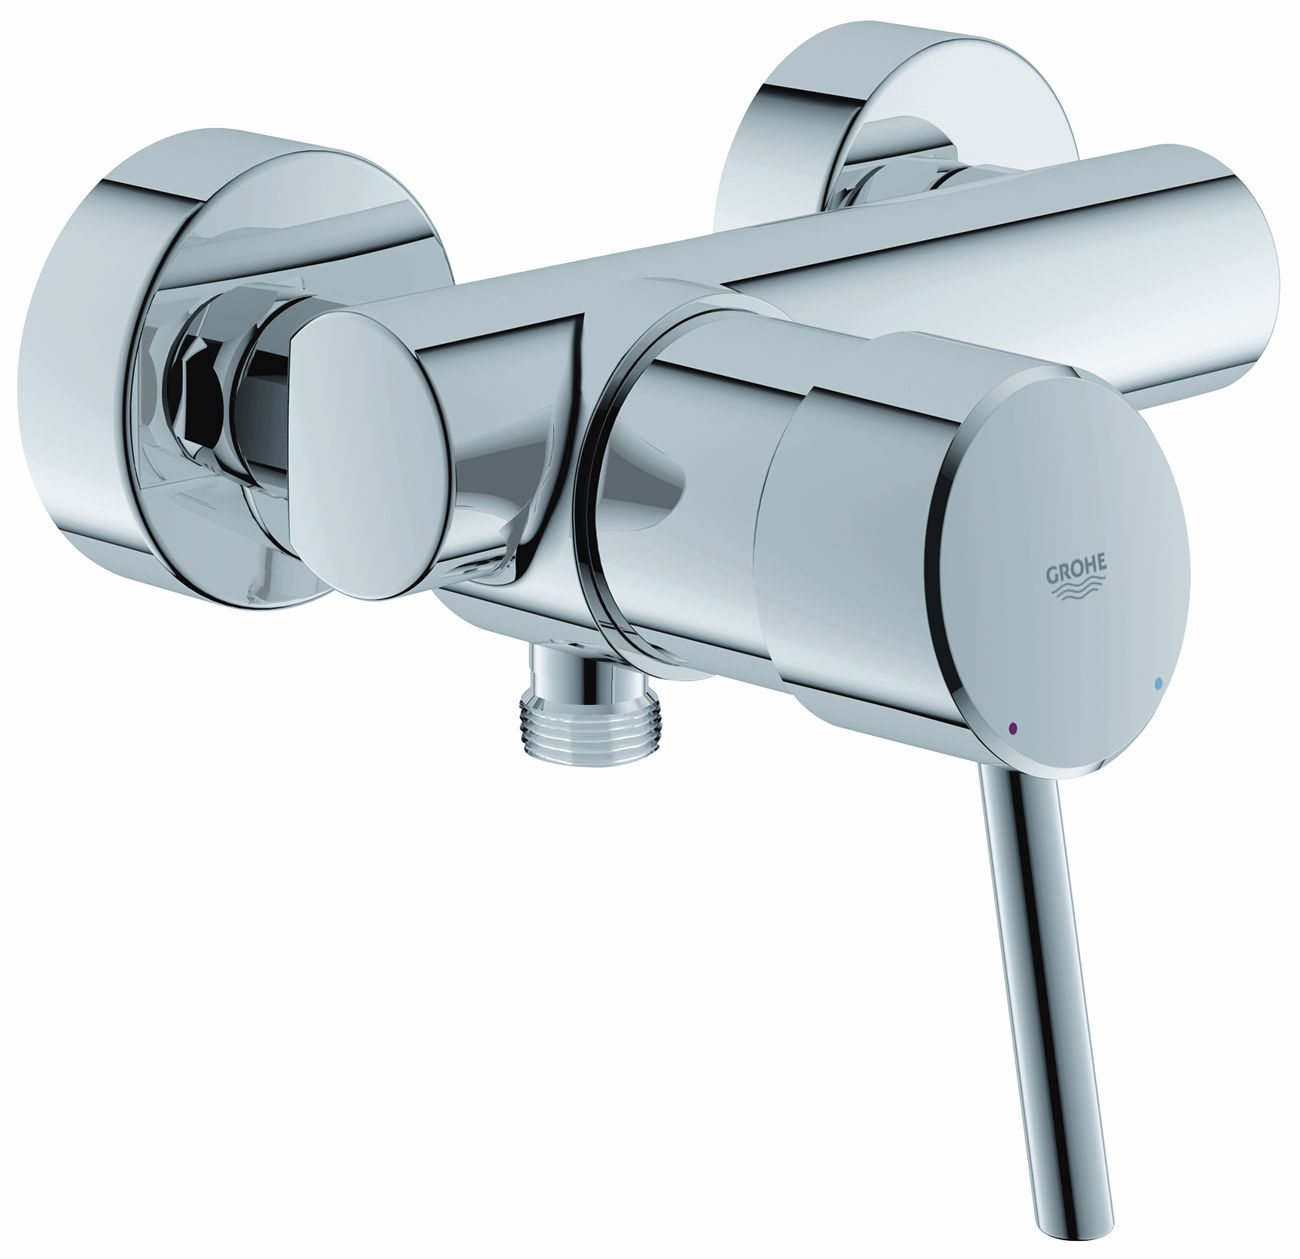 Grohe mitigeur concetto pour douche montage mural 32699001.jpg